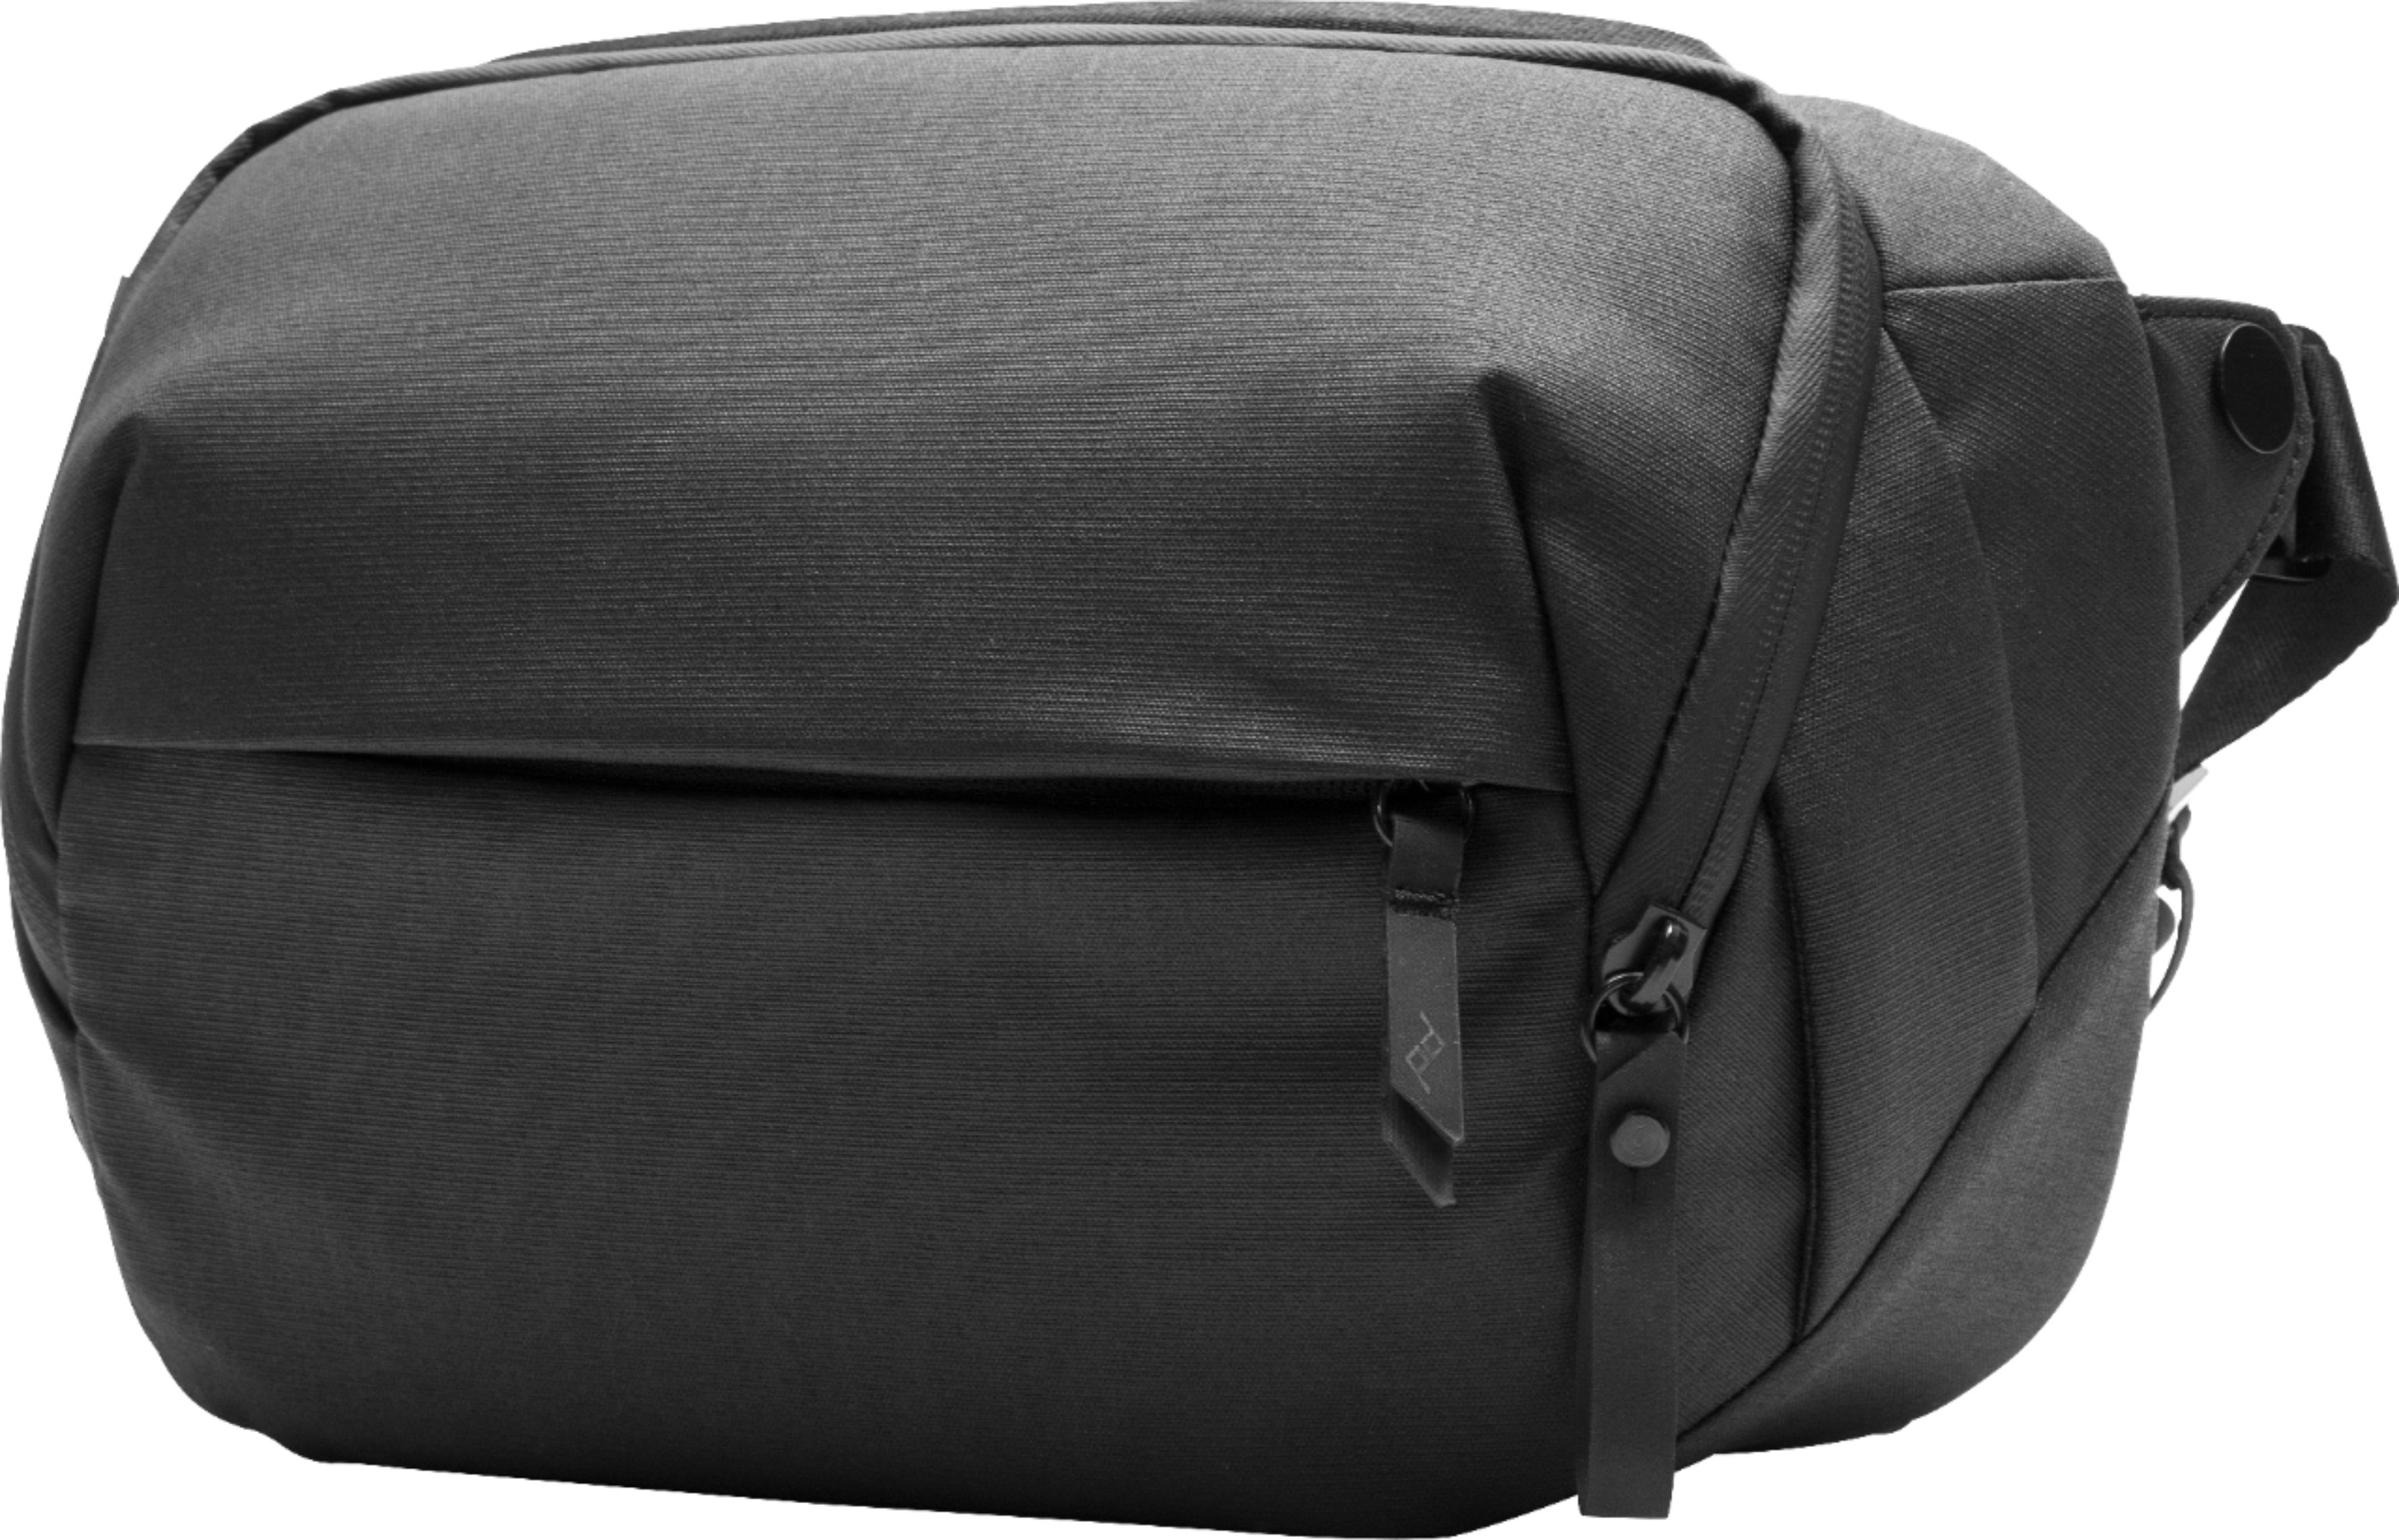 Peak Design Peak Design Camera Carrying Bag Black